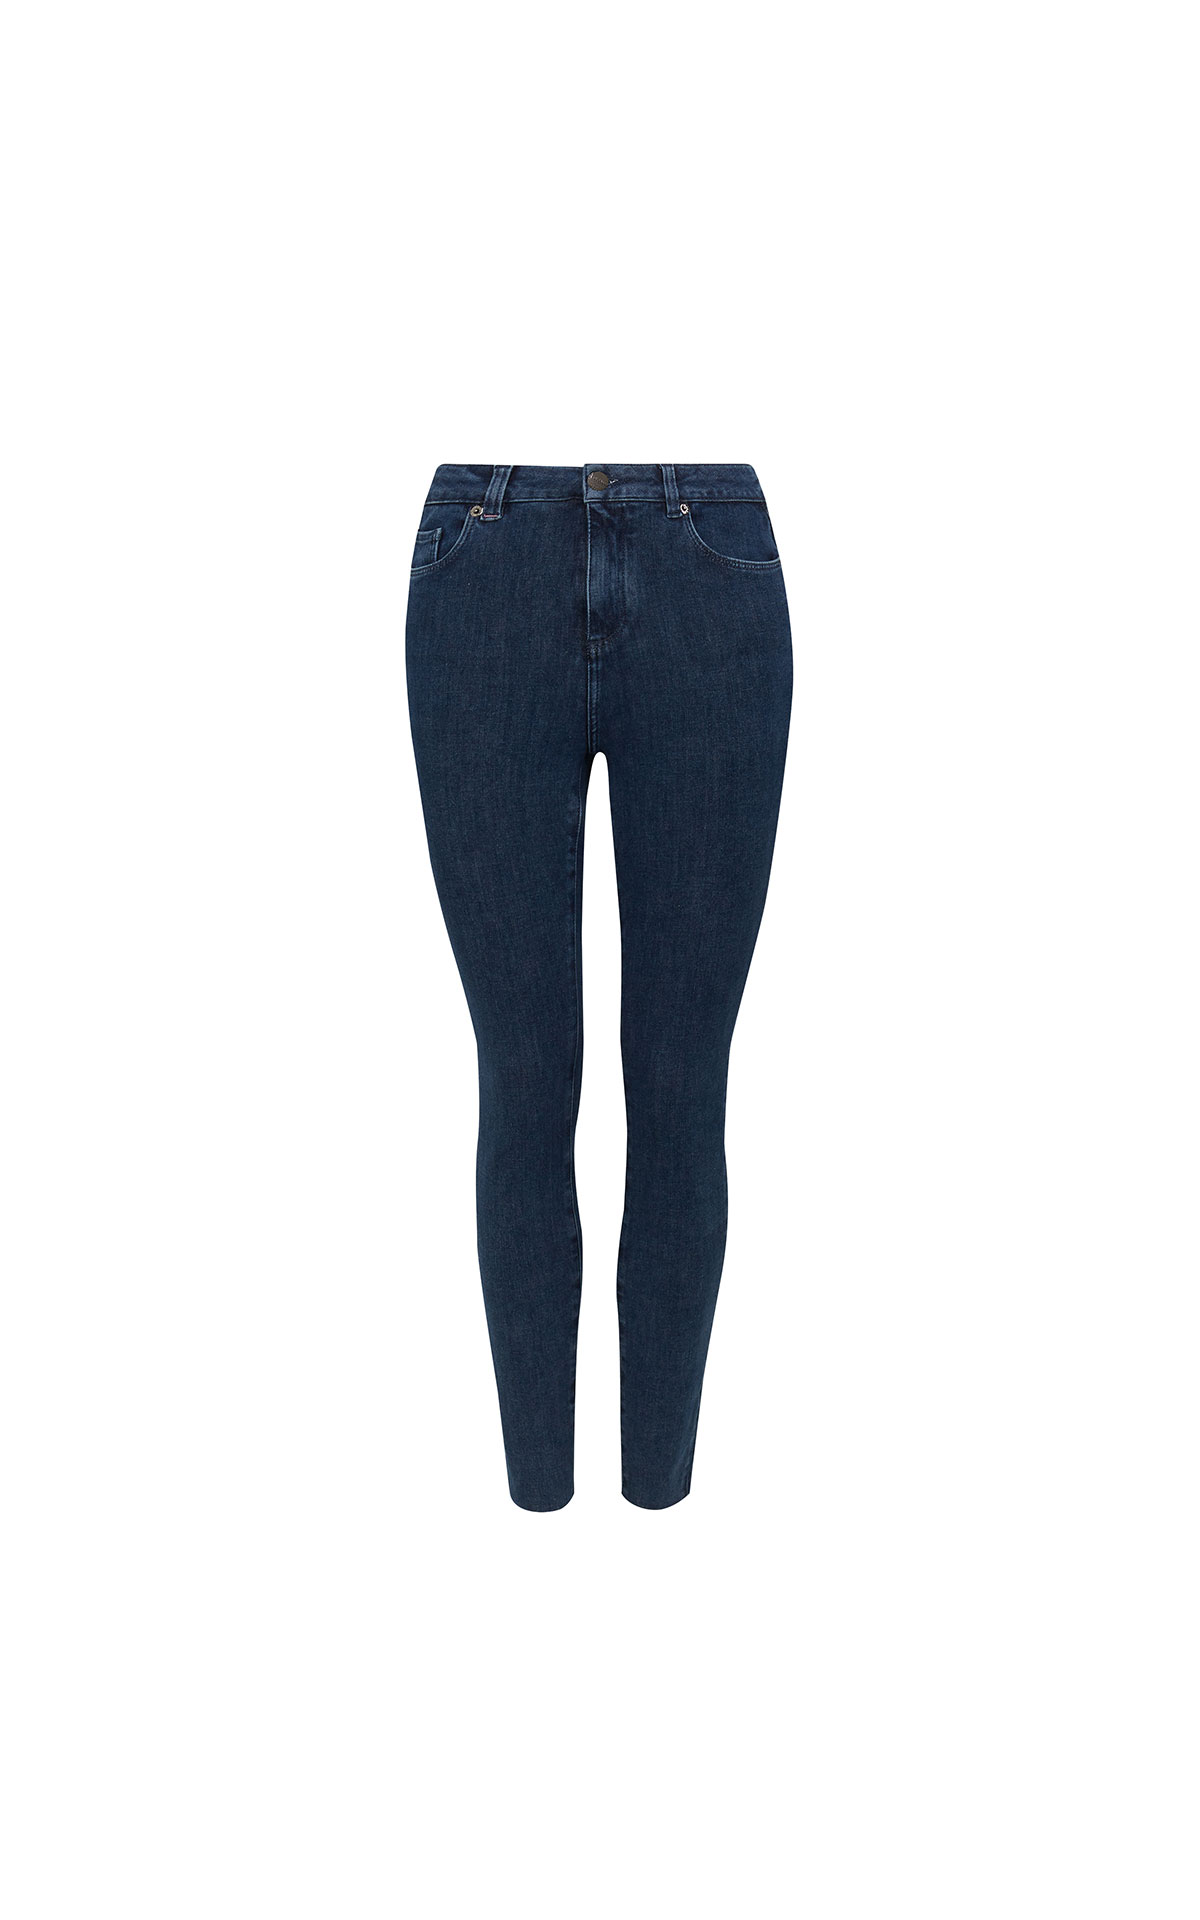 Ted Baker Magolo Raw Hem Skinny Womenswear Jean at The Bicester Village Shopping Collection